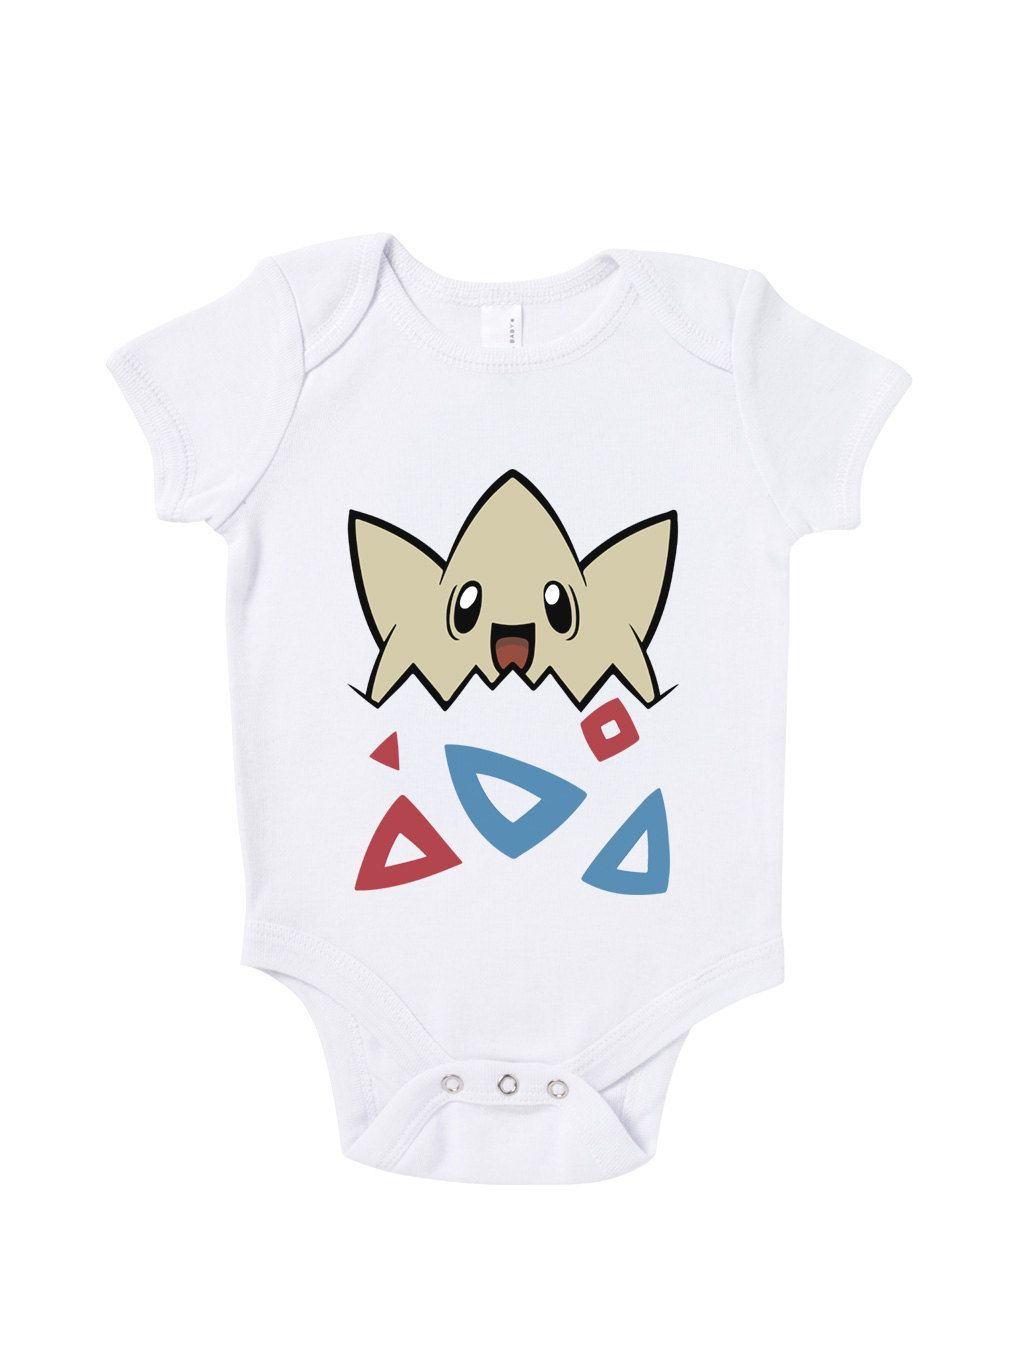 7c71c491b Togepi Baby Grow Humour Gift Pokemon Inspired by BlueIvoryLane, £8.99